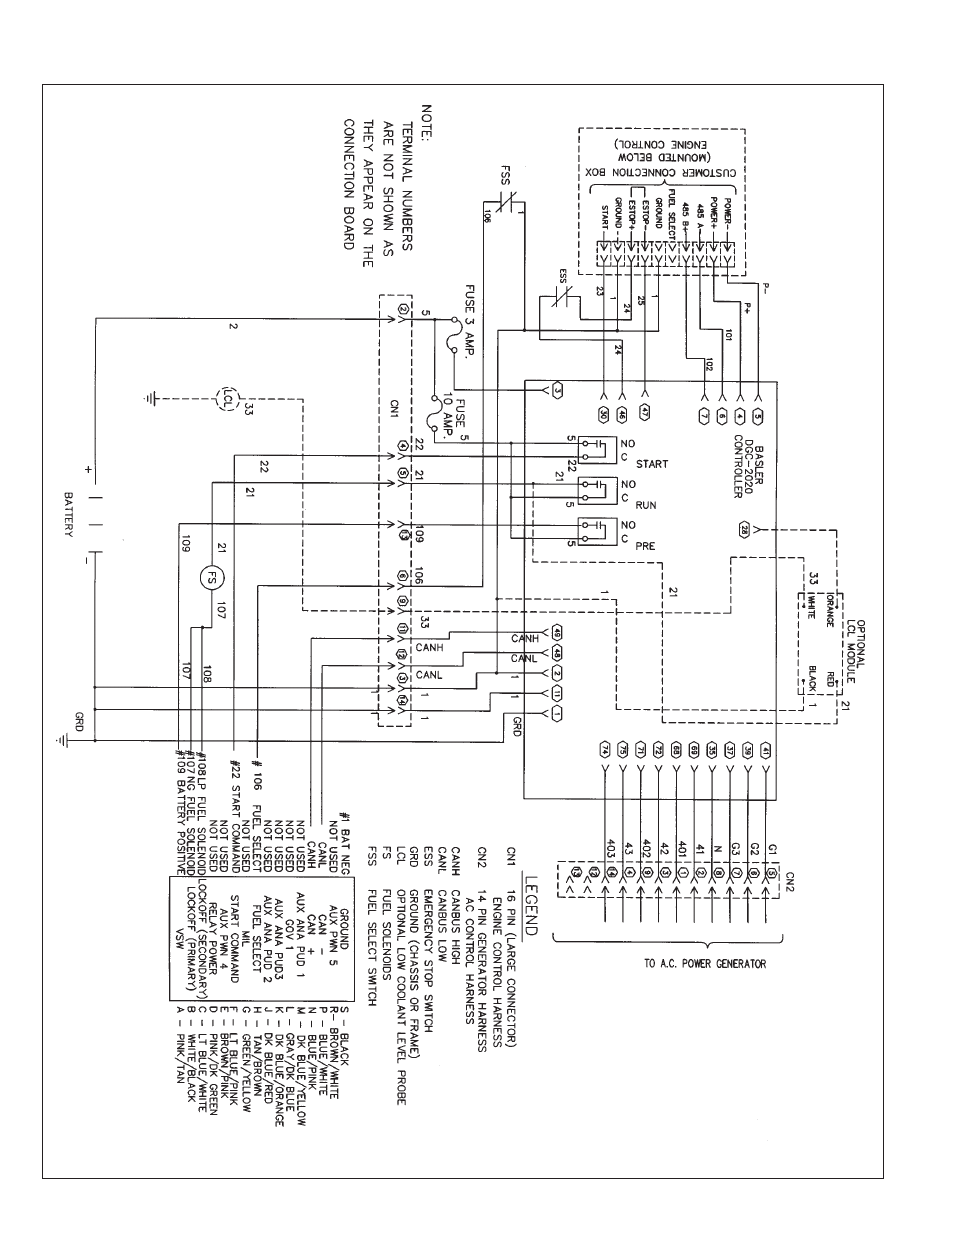 Newage Stamford Generator Wiring Diagram FULL HD Quality Version Wiring  Diagram - CLAUDINEMASSONVALUE-CHAIN-ANALYSIS.PHPBBMODS.IT | Basler Generator Wiring Diagram |  | claudinemassonvalue-chain-analysis.phpbbmods.it